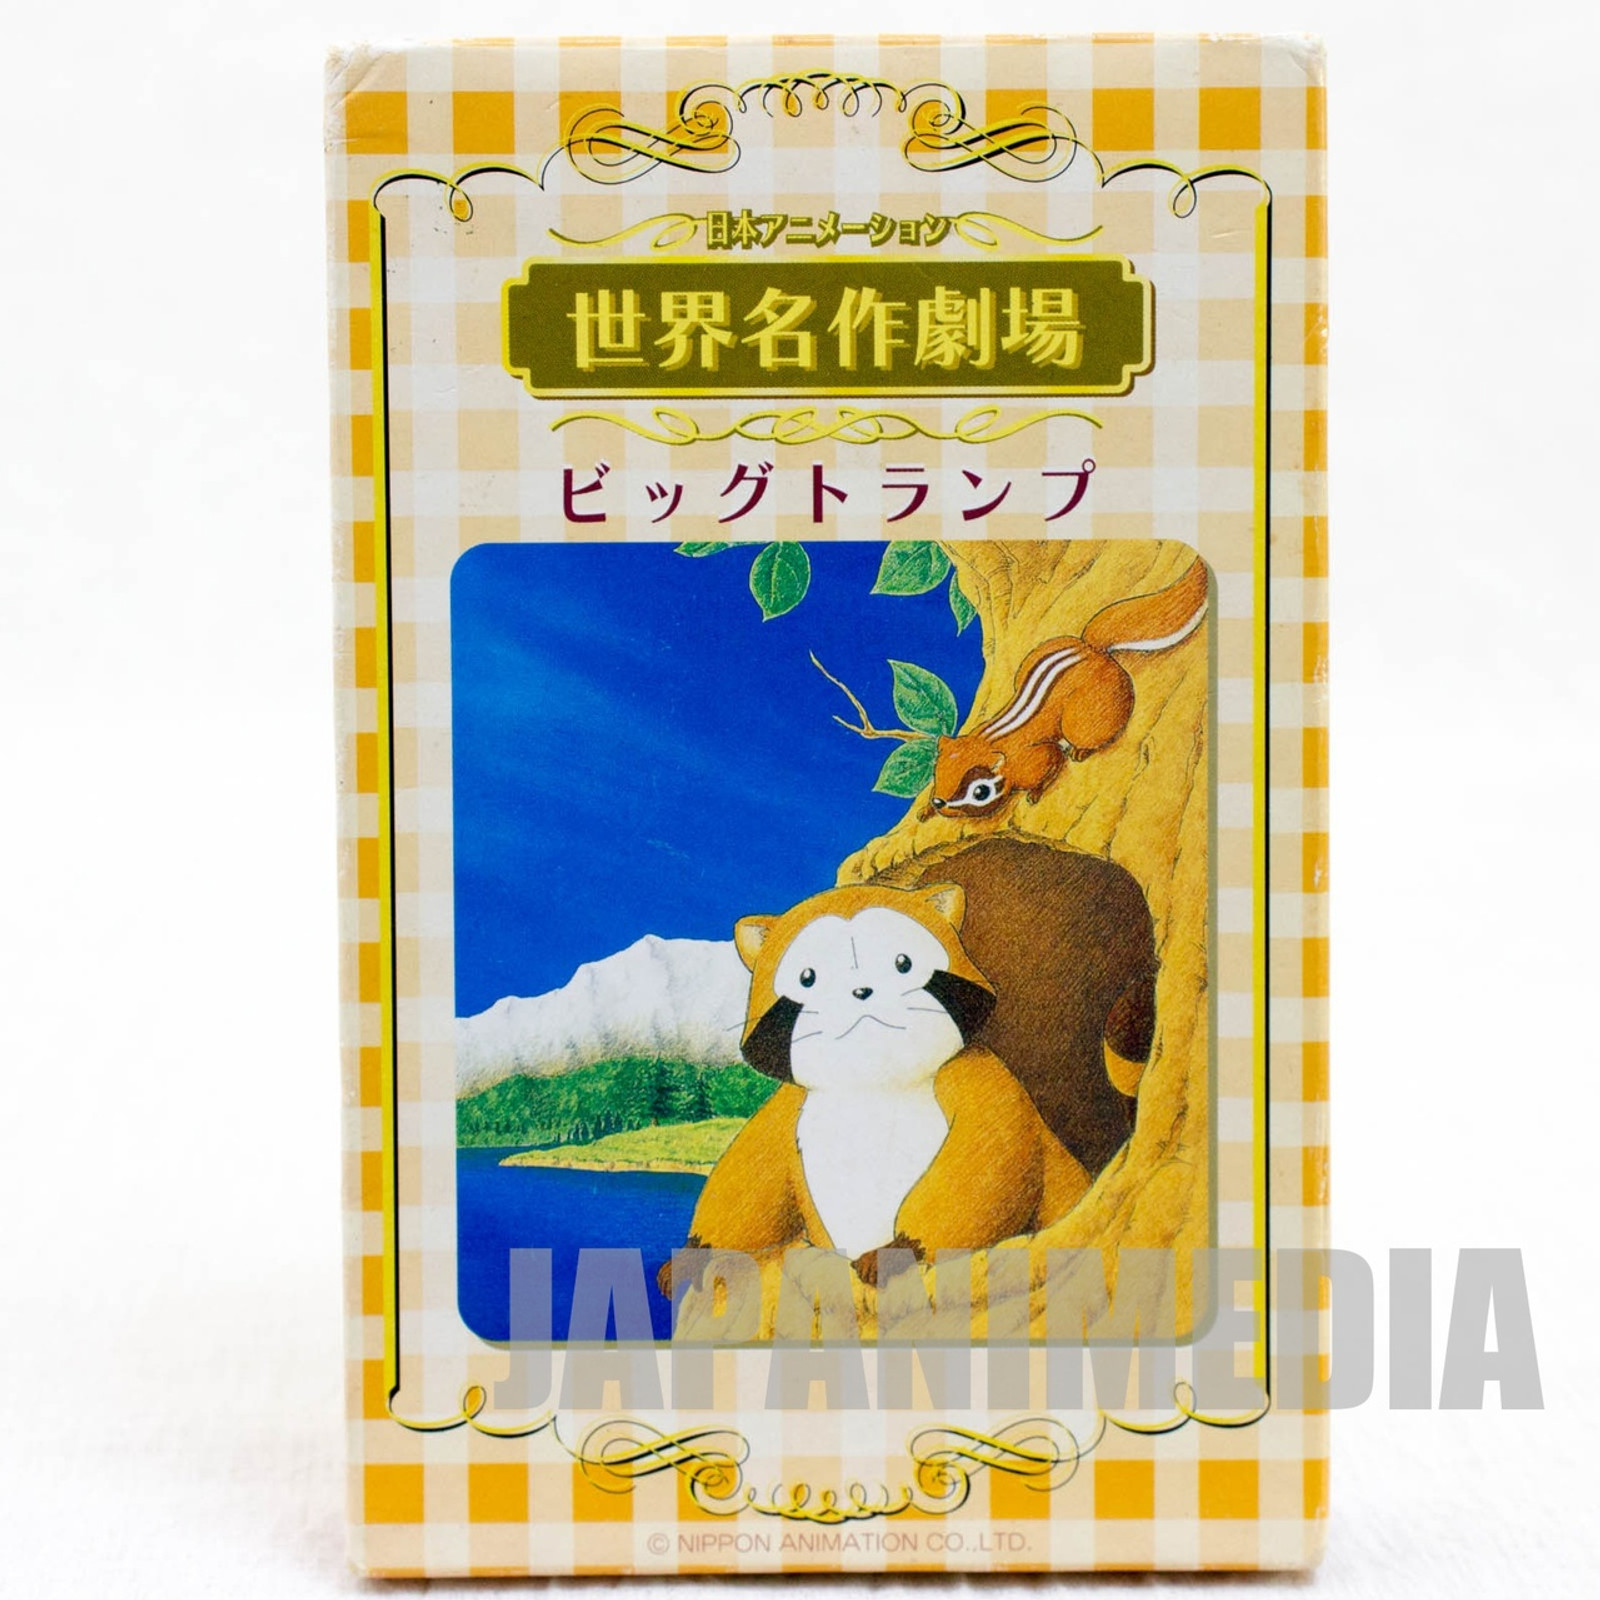 World Masterpiece Theater Big Playing Card JAPAN ANIME